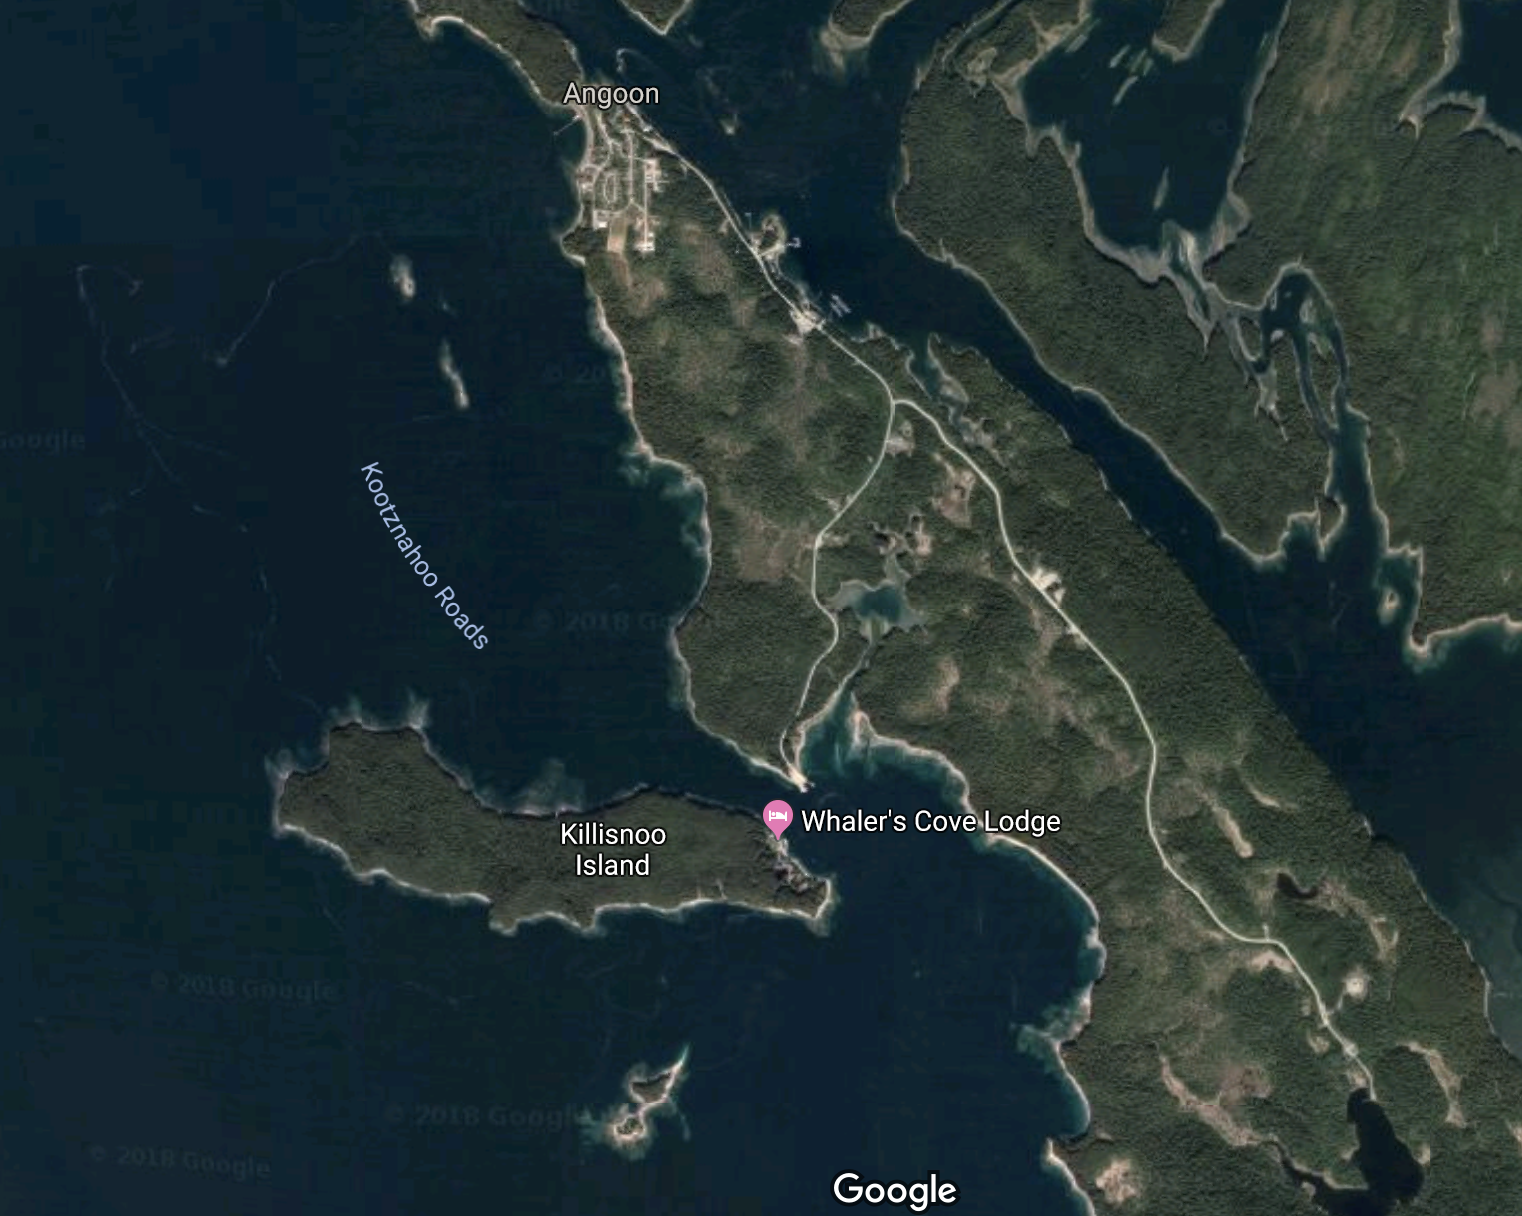 Google map of Angoon and Killisnoo Island, showing the settlements at night surrounded by woods and water